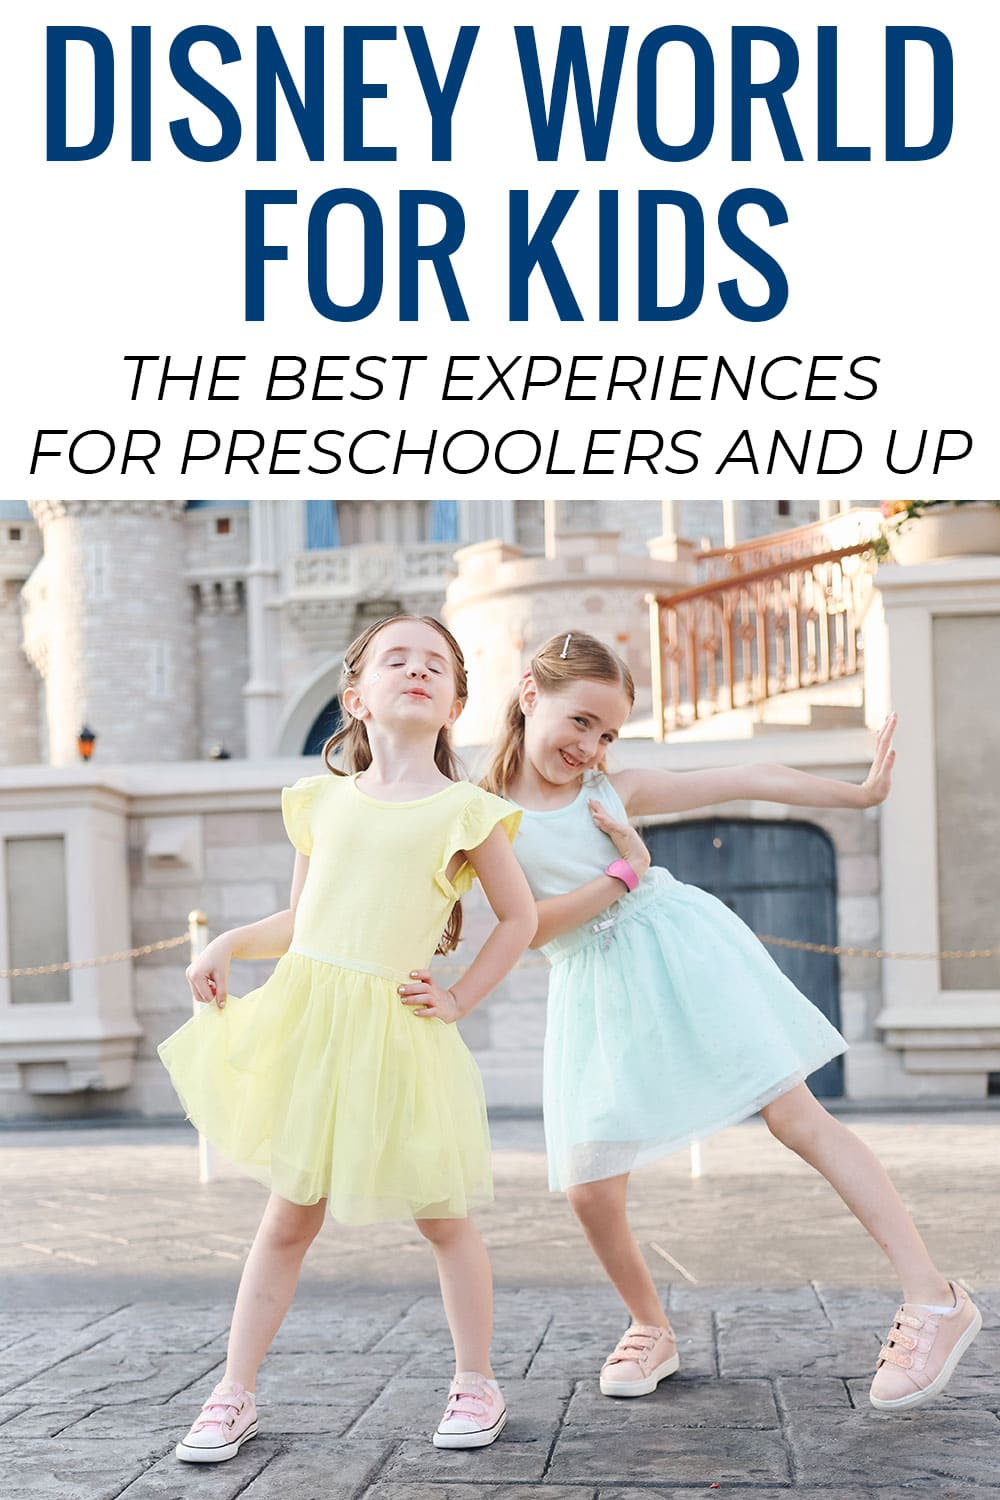 Disney World for Kids: The Best Experiences for Preschoolers